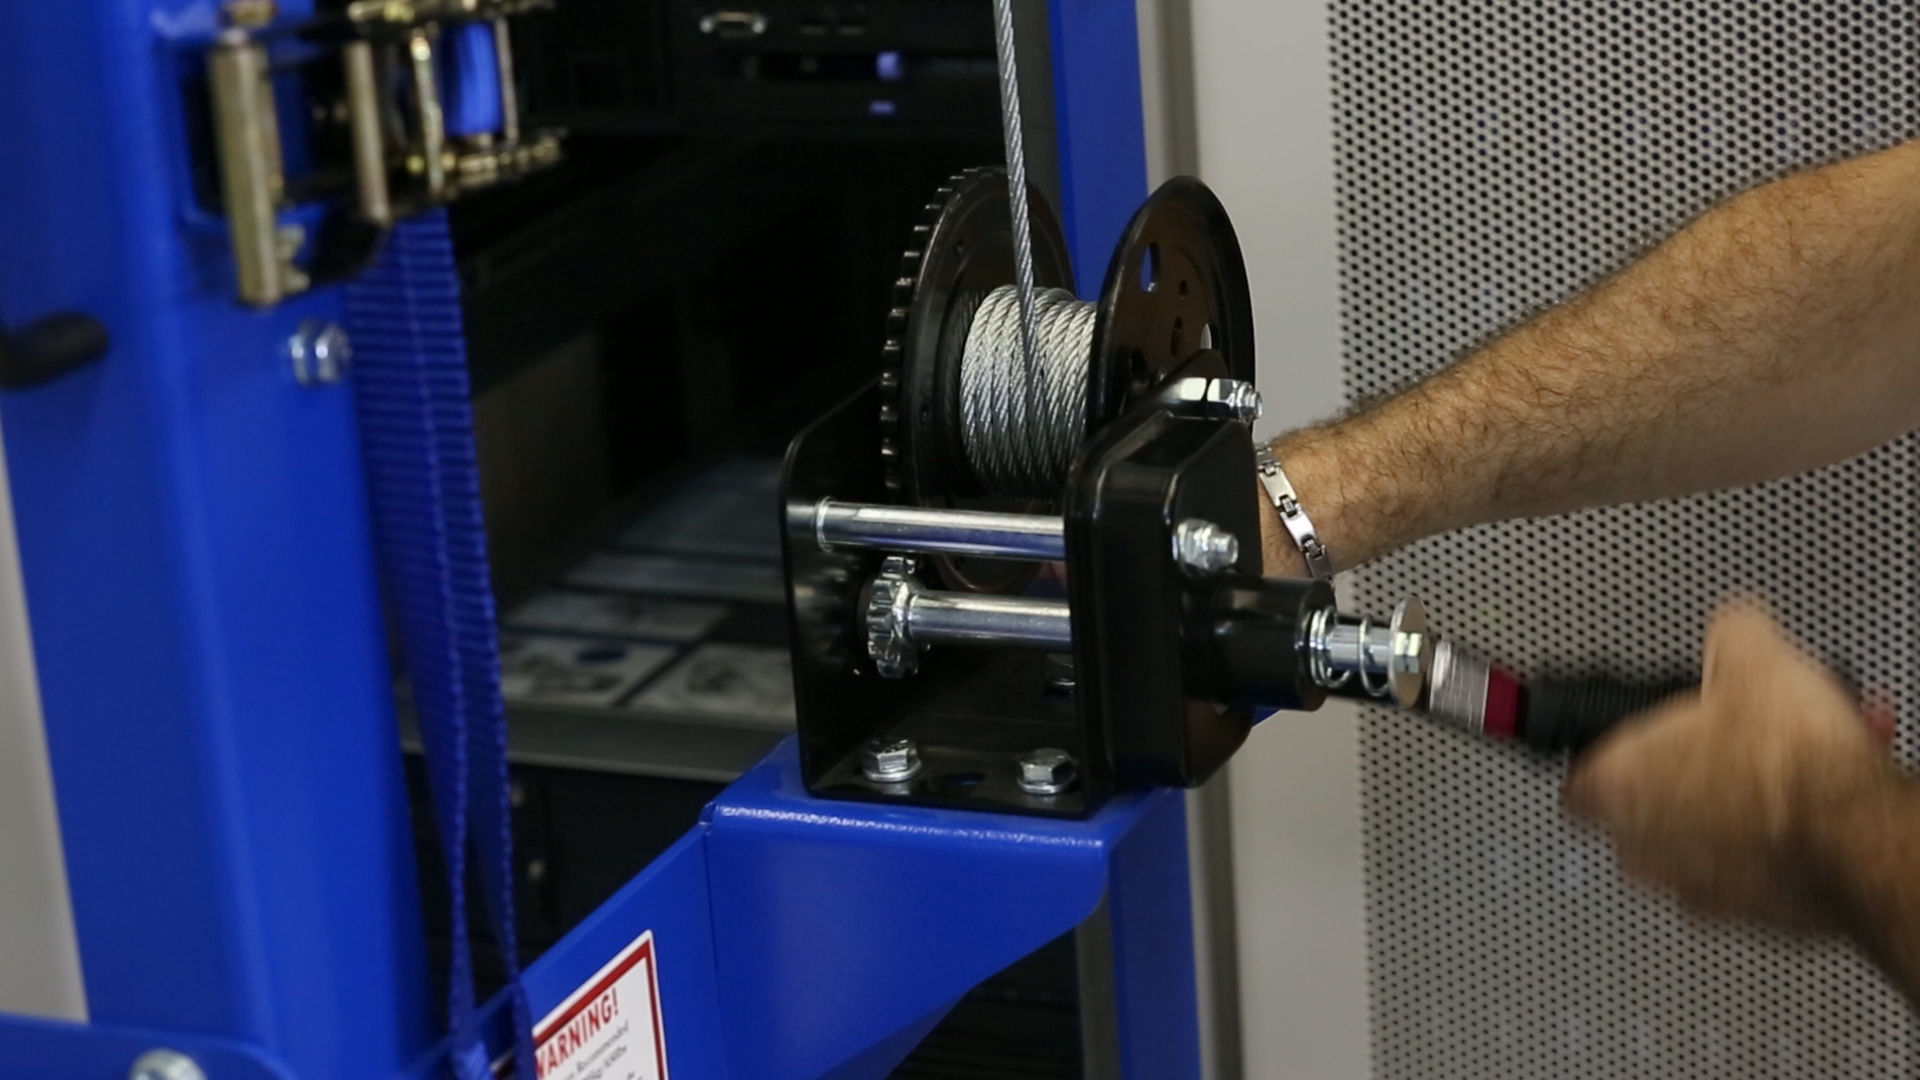 hight resolution of with racklift lifting servers with a weight over 300 pounds let alone 600 pounds by hand cranking requires a tremendous amount of arm and shoulder